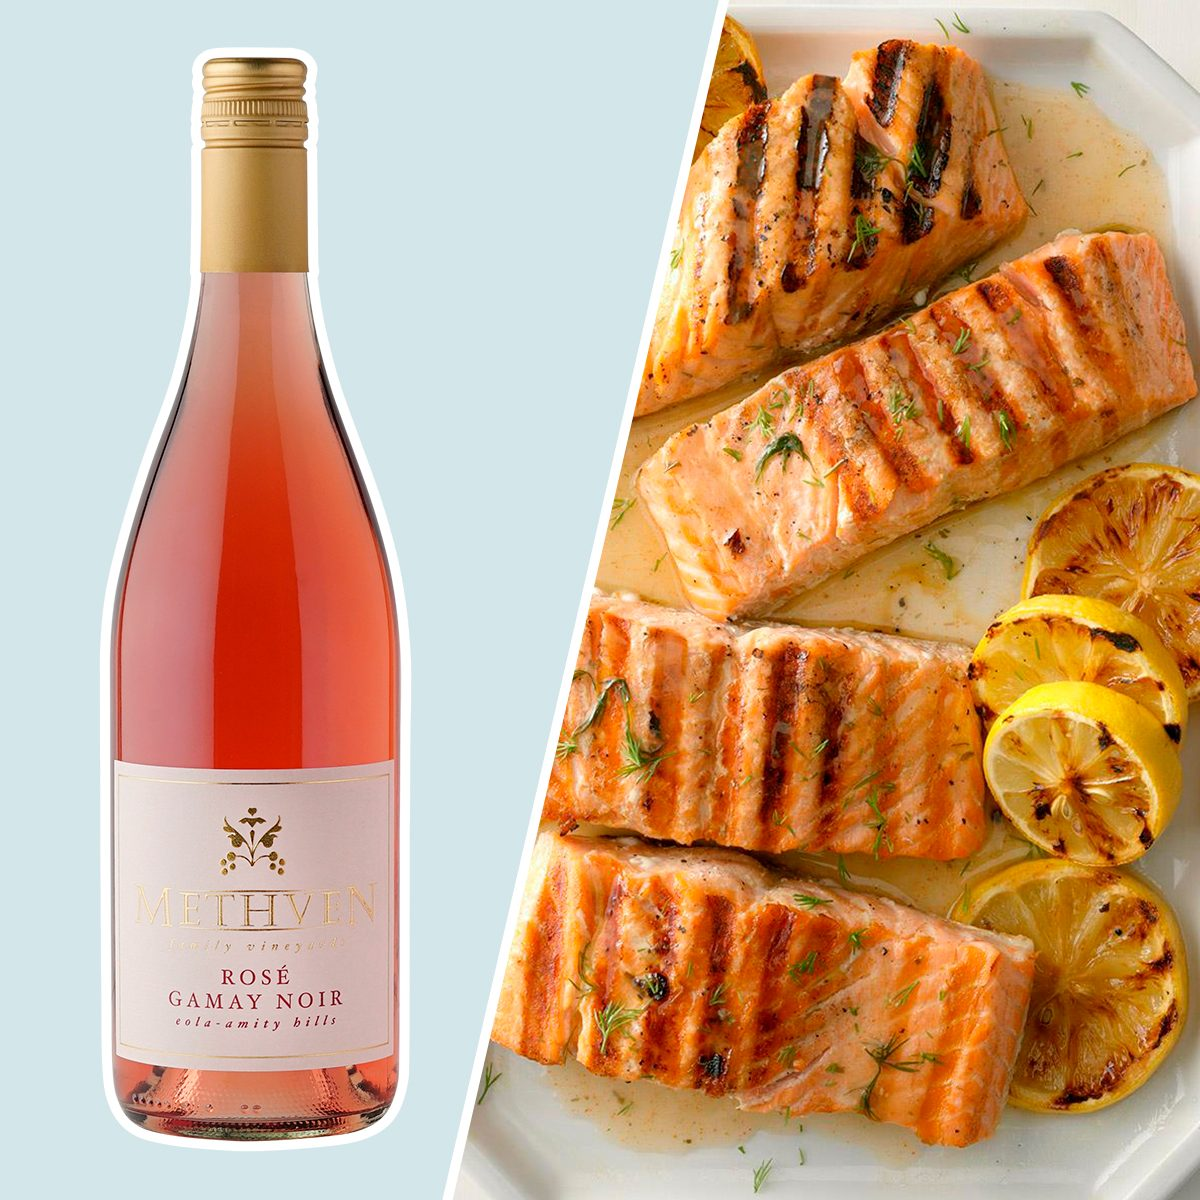 Methven Family 2019 GAMAY ROSE and grilled salmon